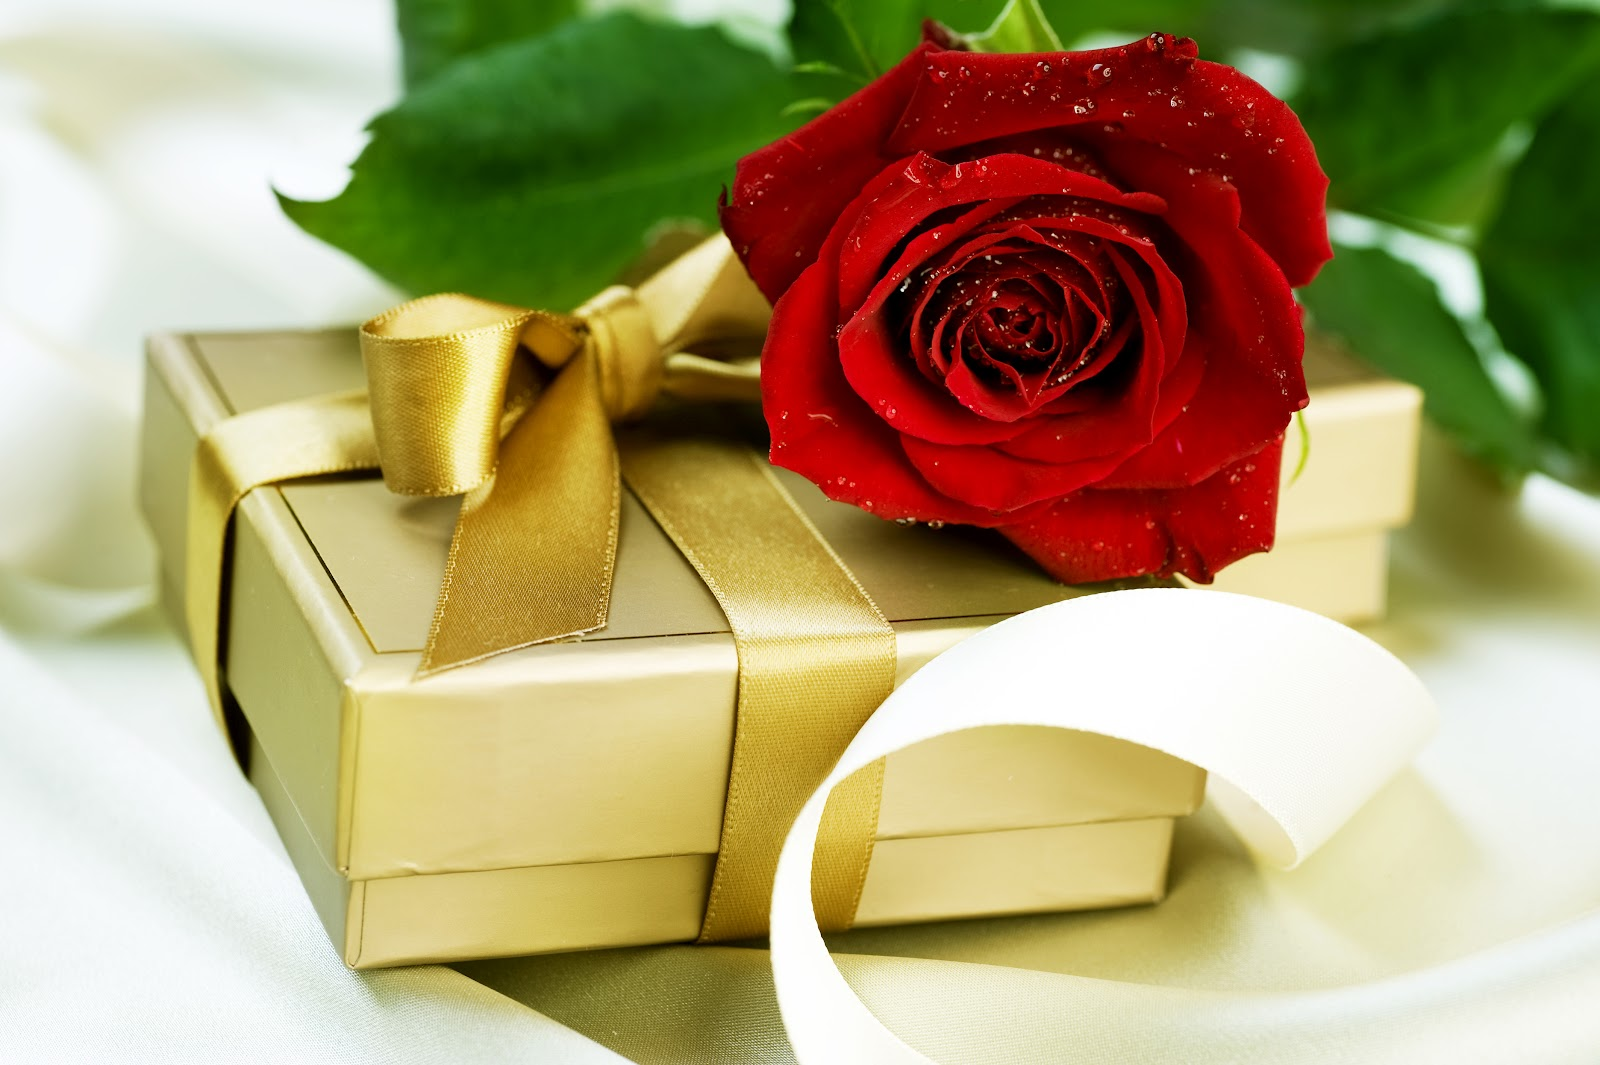 Beautiful Love Gift Wallpaper : Beautiful Flower Wallpapers For You: Gift and Love Flower Wallpaper